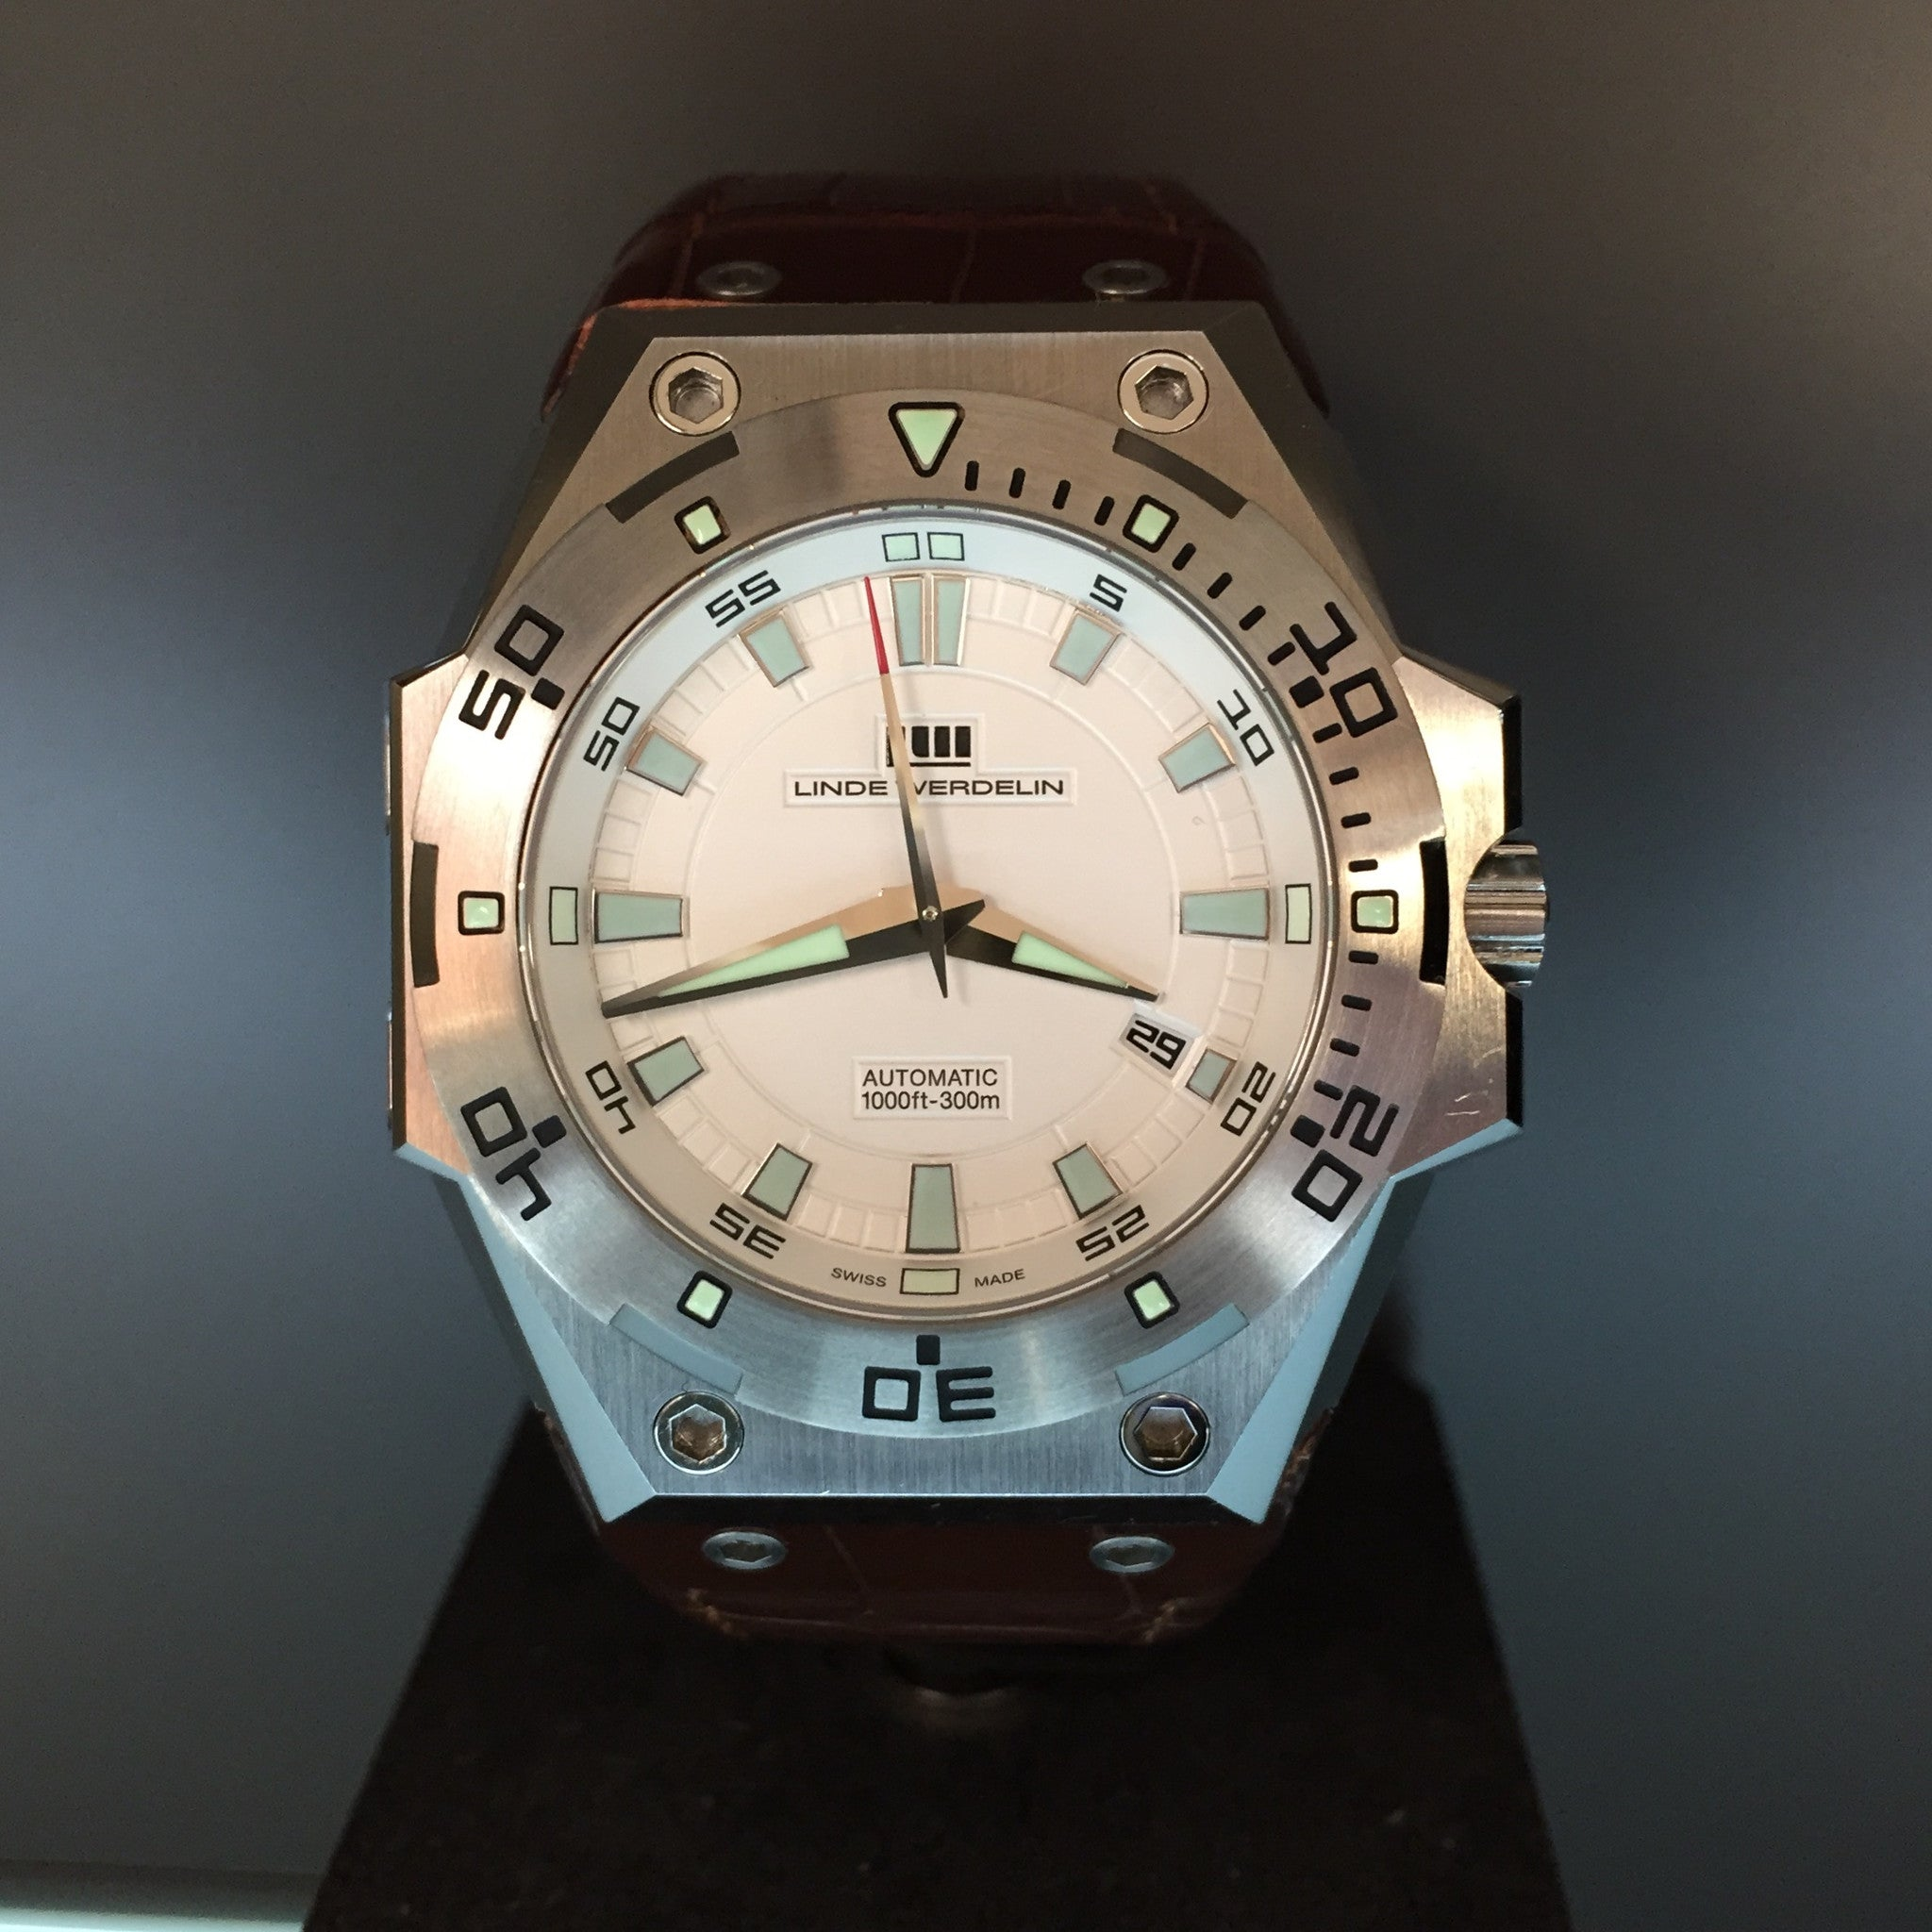 Pre-owned. Linde Werdelin One 2.2